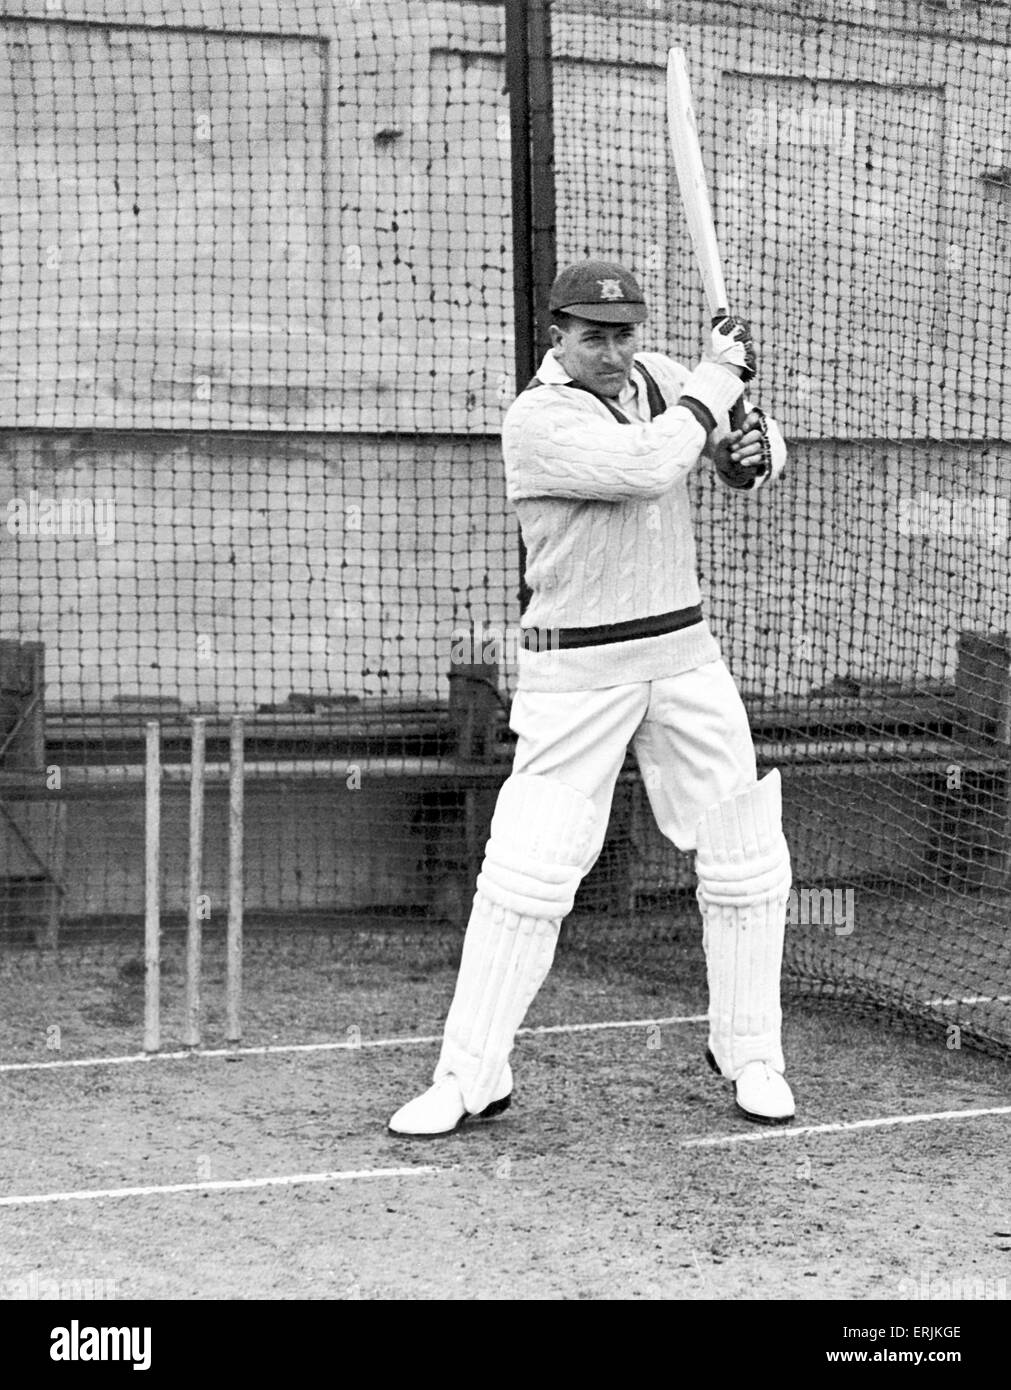 Harold Larwood in batting practice Circa 1930. - Stock Image